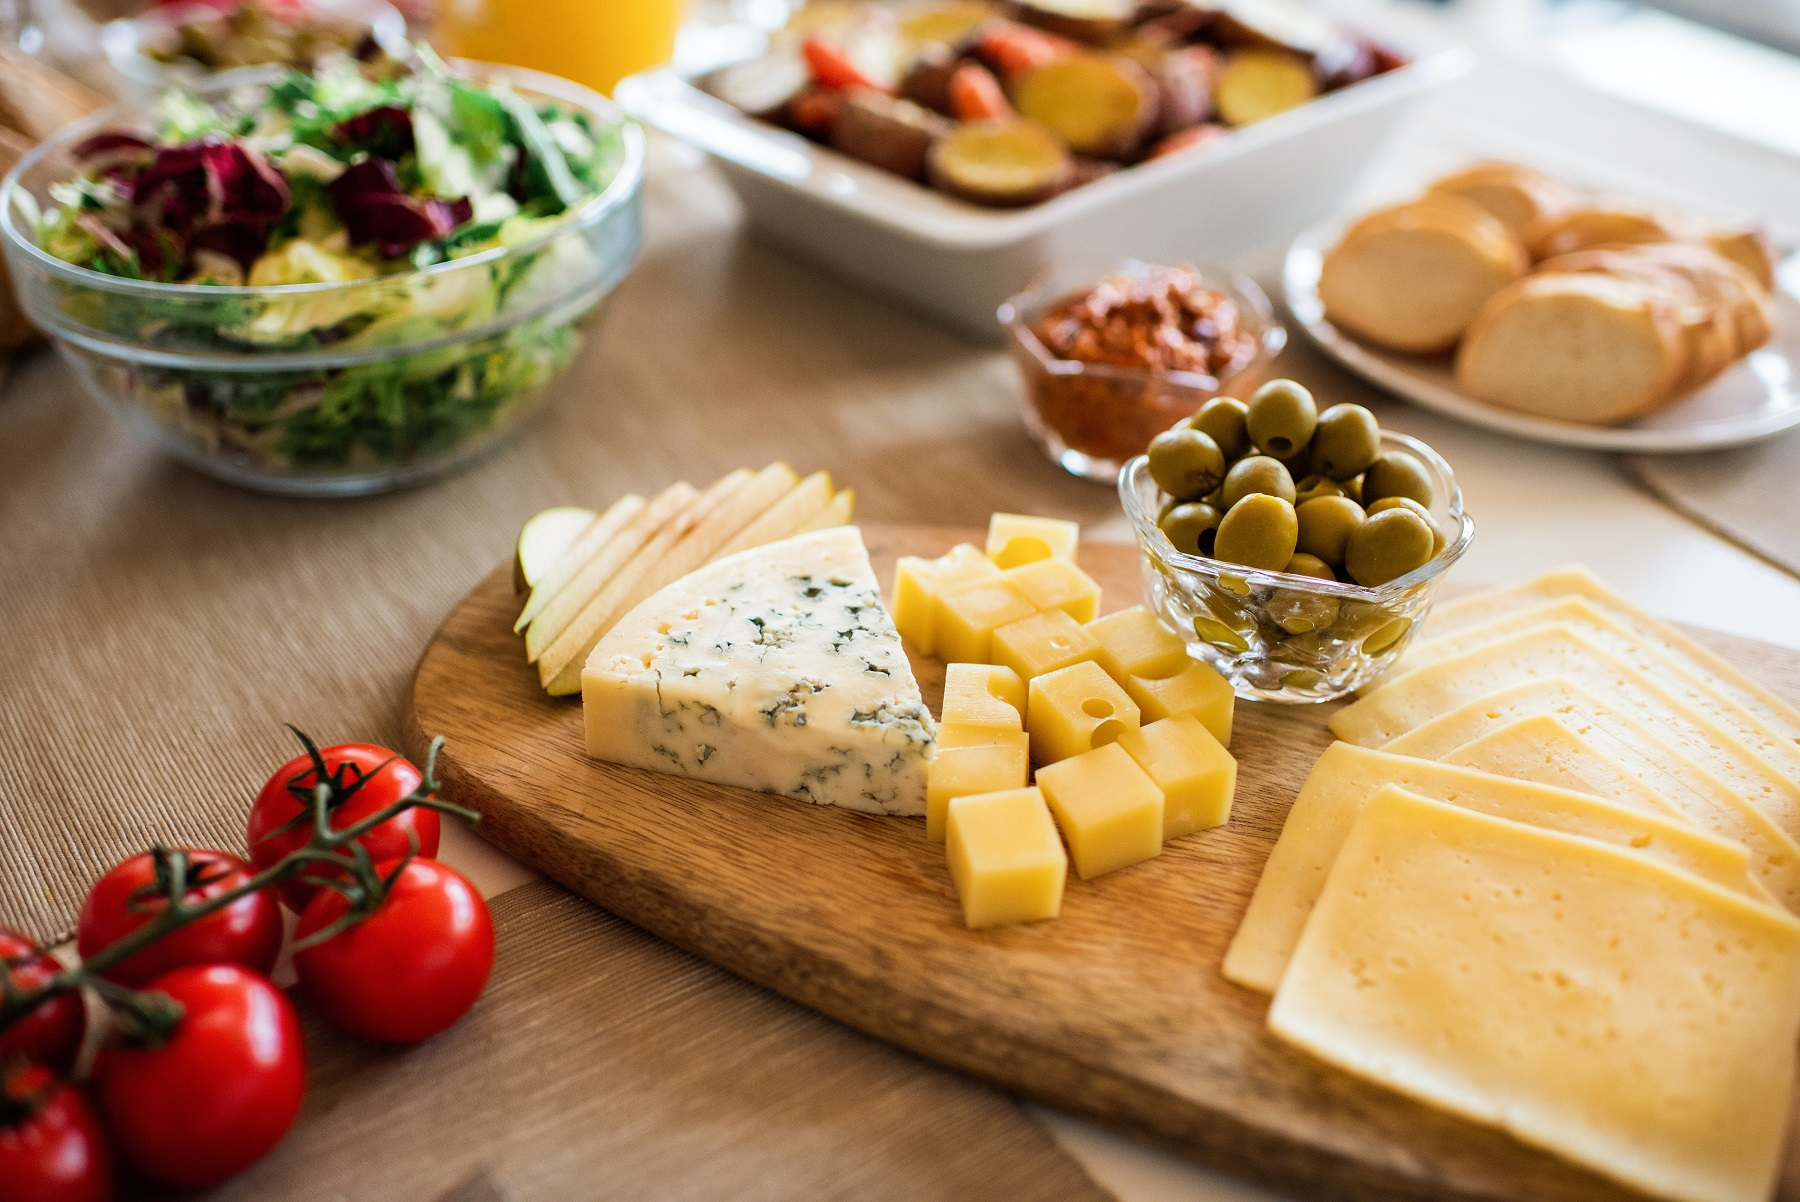 variety of snack on table - cut the costs of food on retirement travel budget